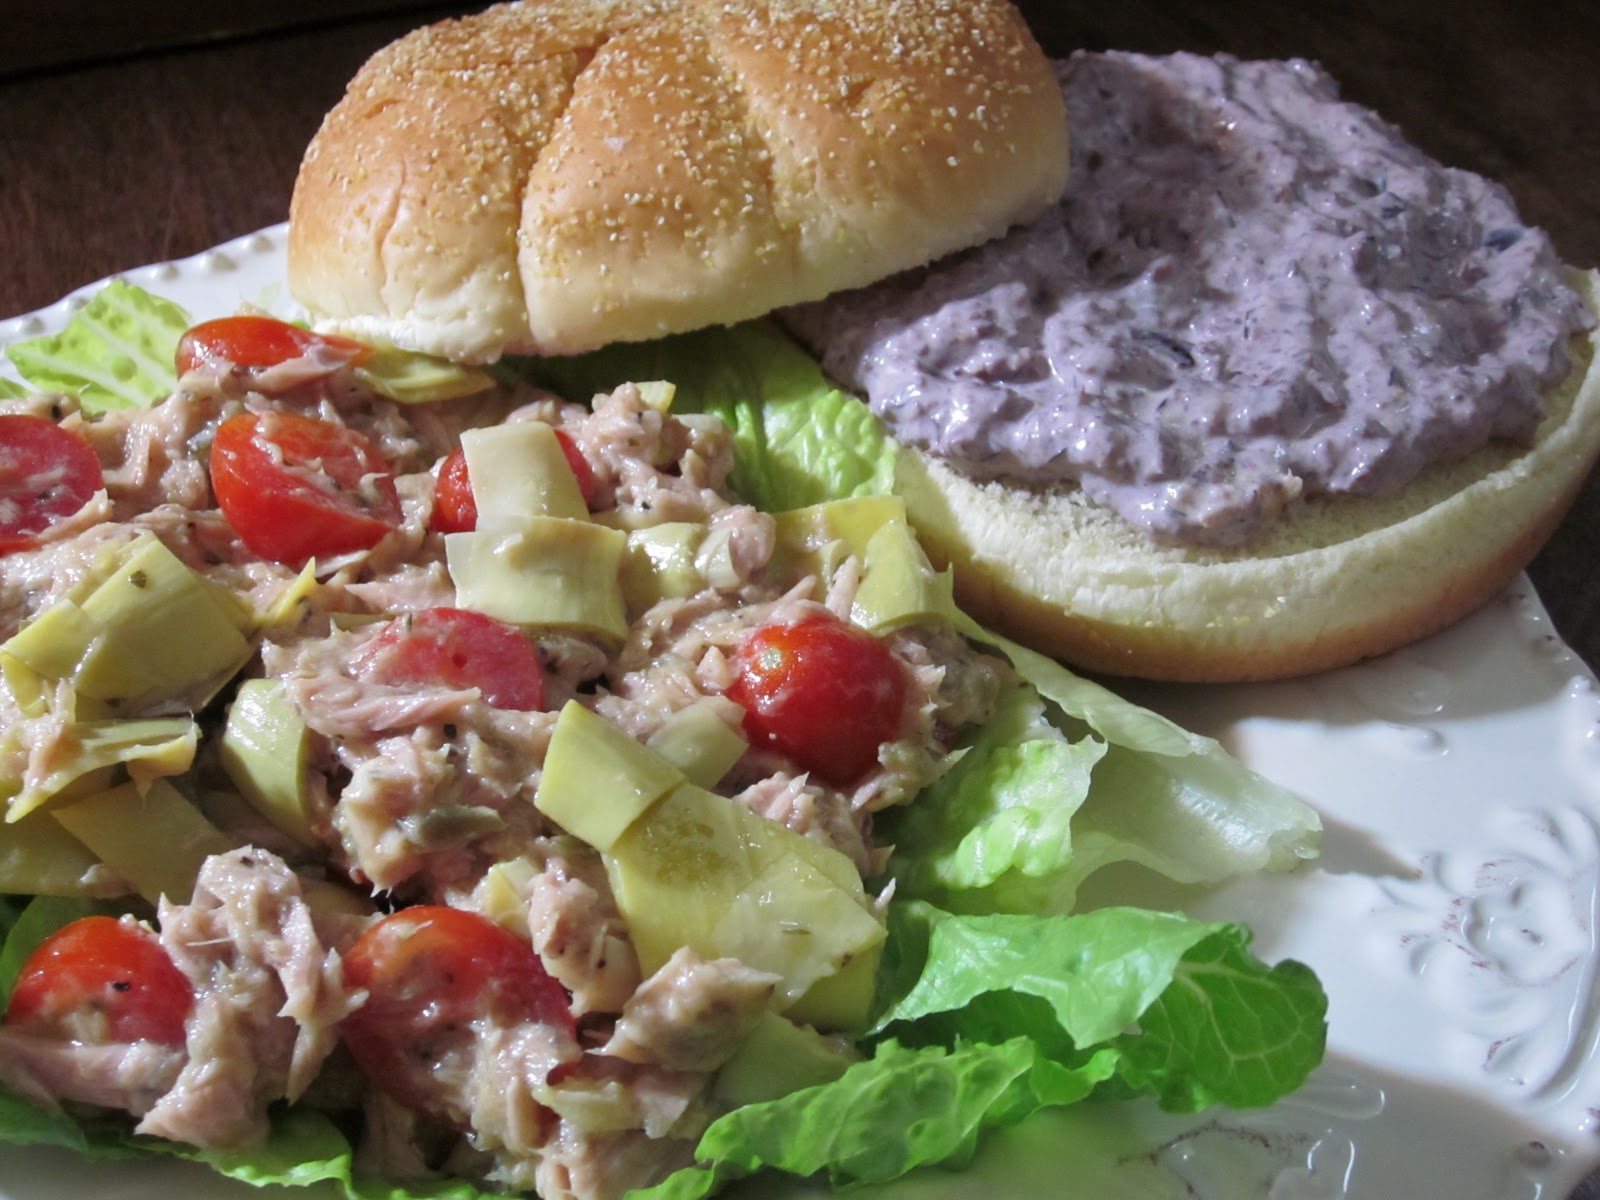 ... Delights: Tuna and Artichoke Salad Sandwiches with Kalamata Olive Mayo